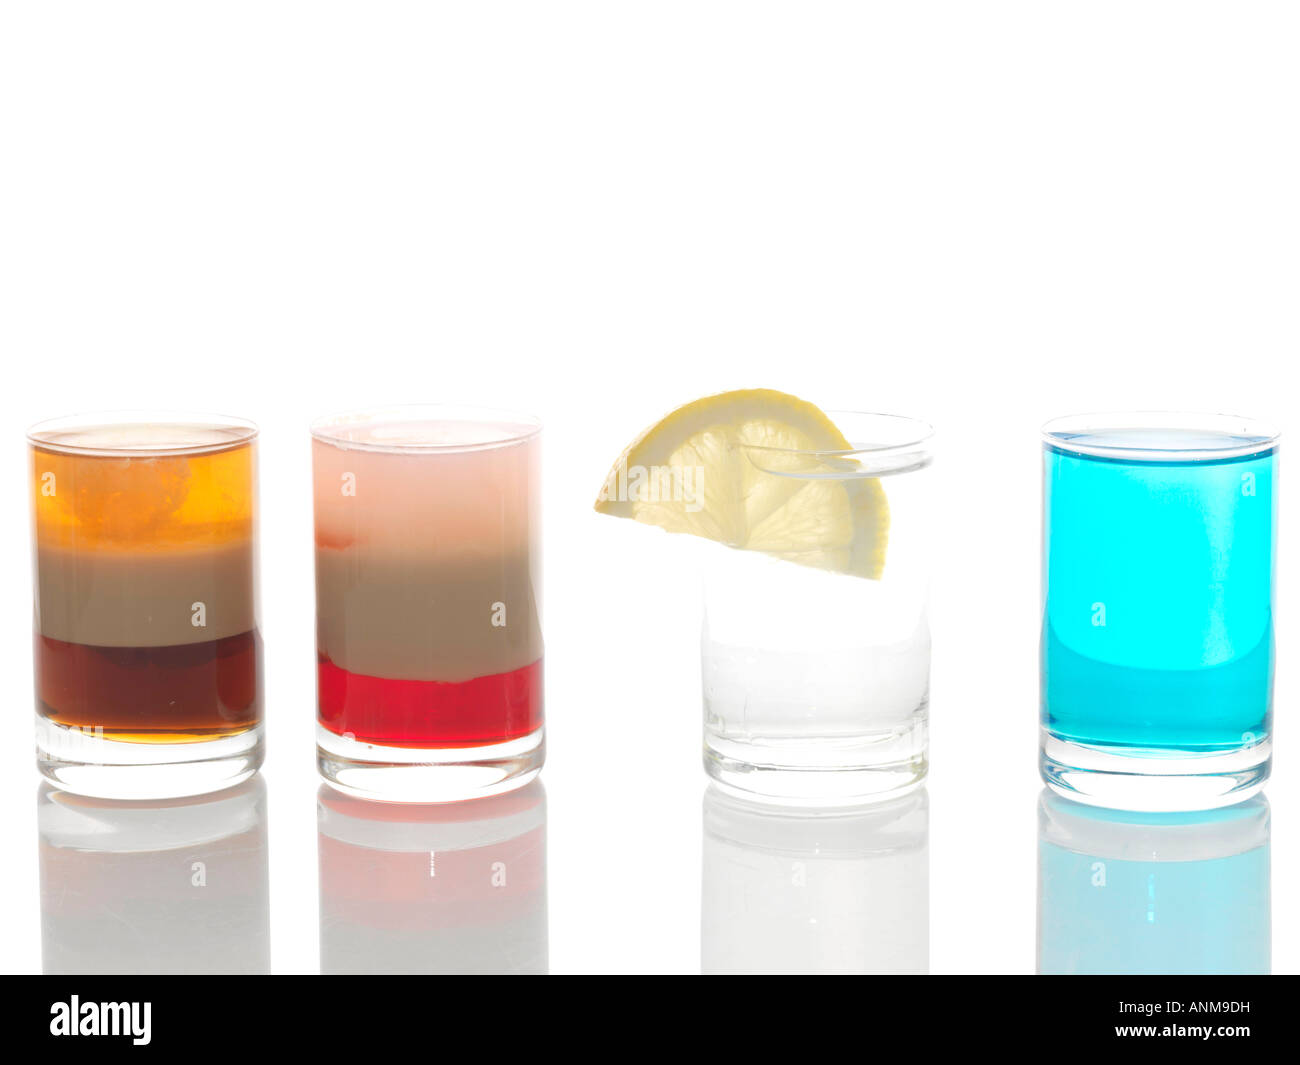 Slippery Nipple Cocktail High Resolution Stock Photography And Images Alamy